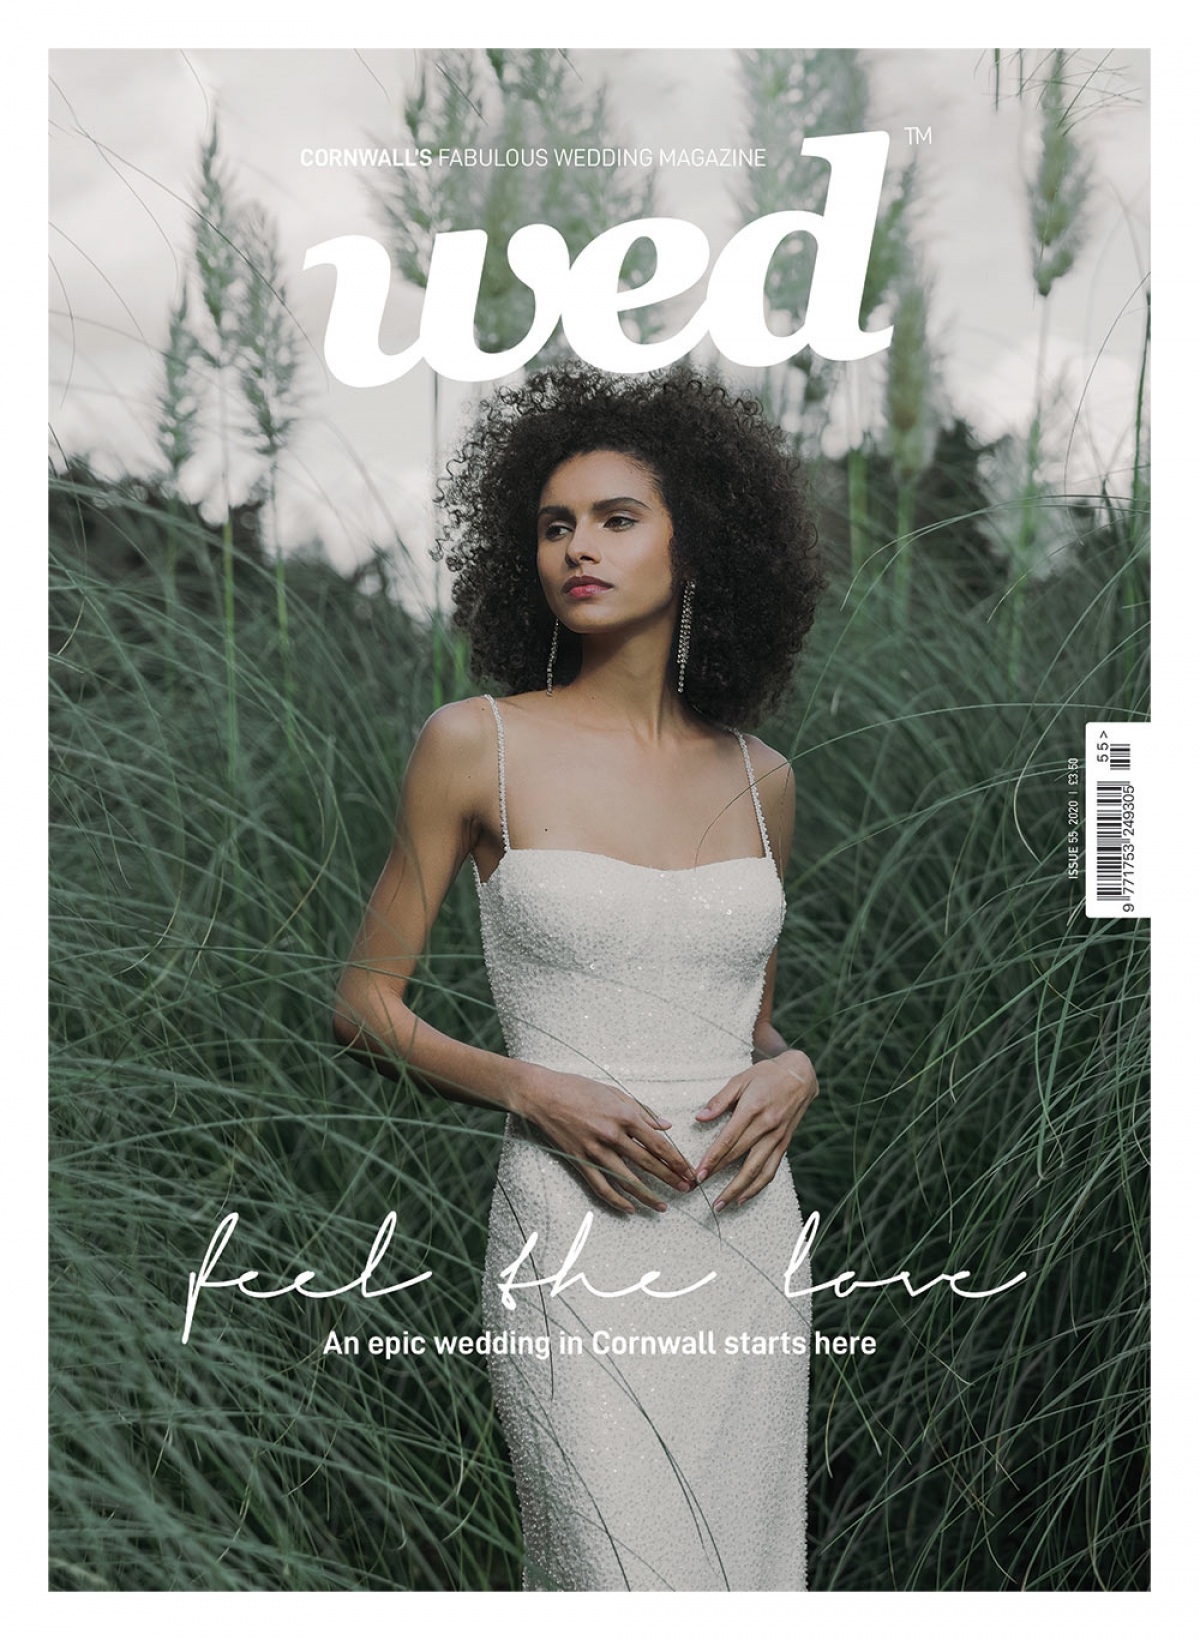 Order a print copy of Cornwall Wed Magazine - Issue 55